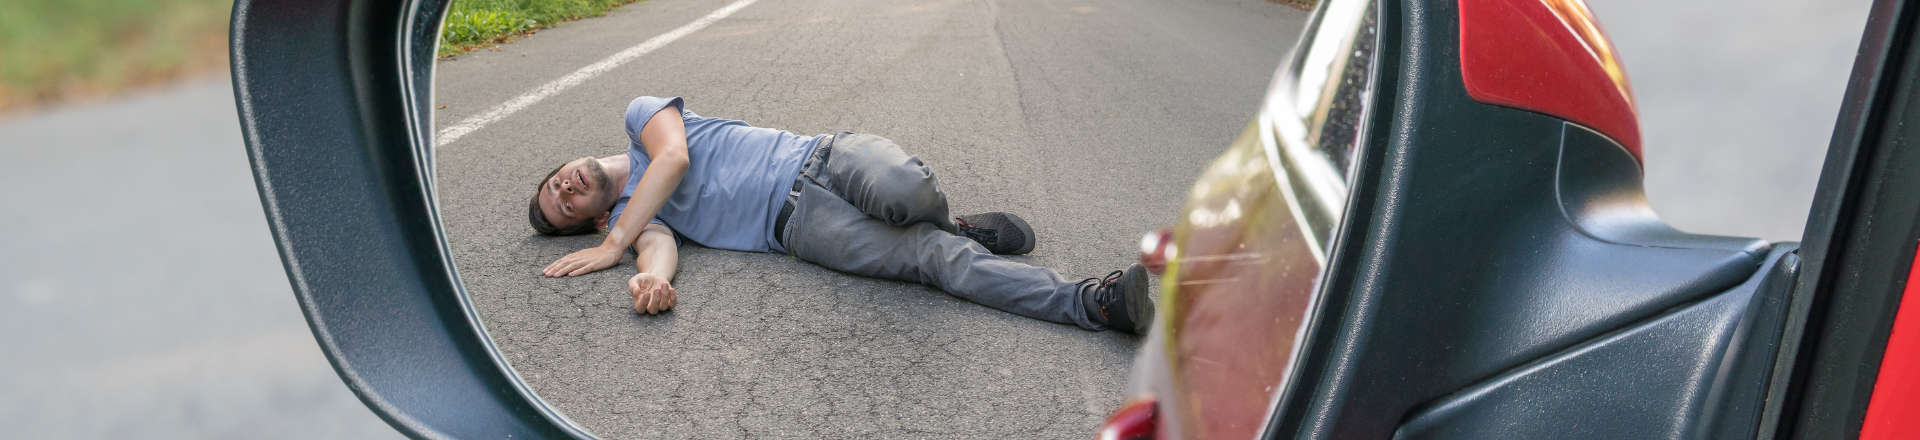 a man hit by a car lying on the road